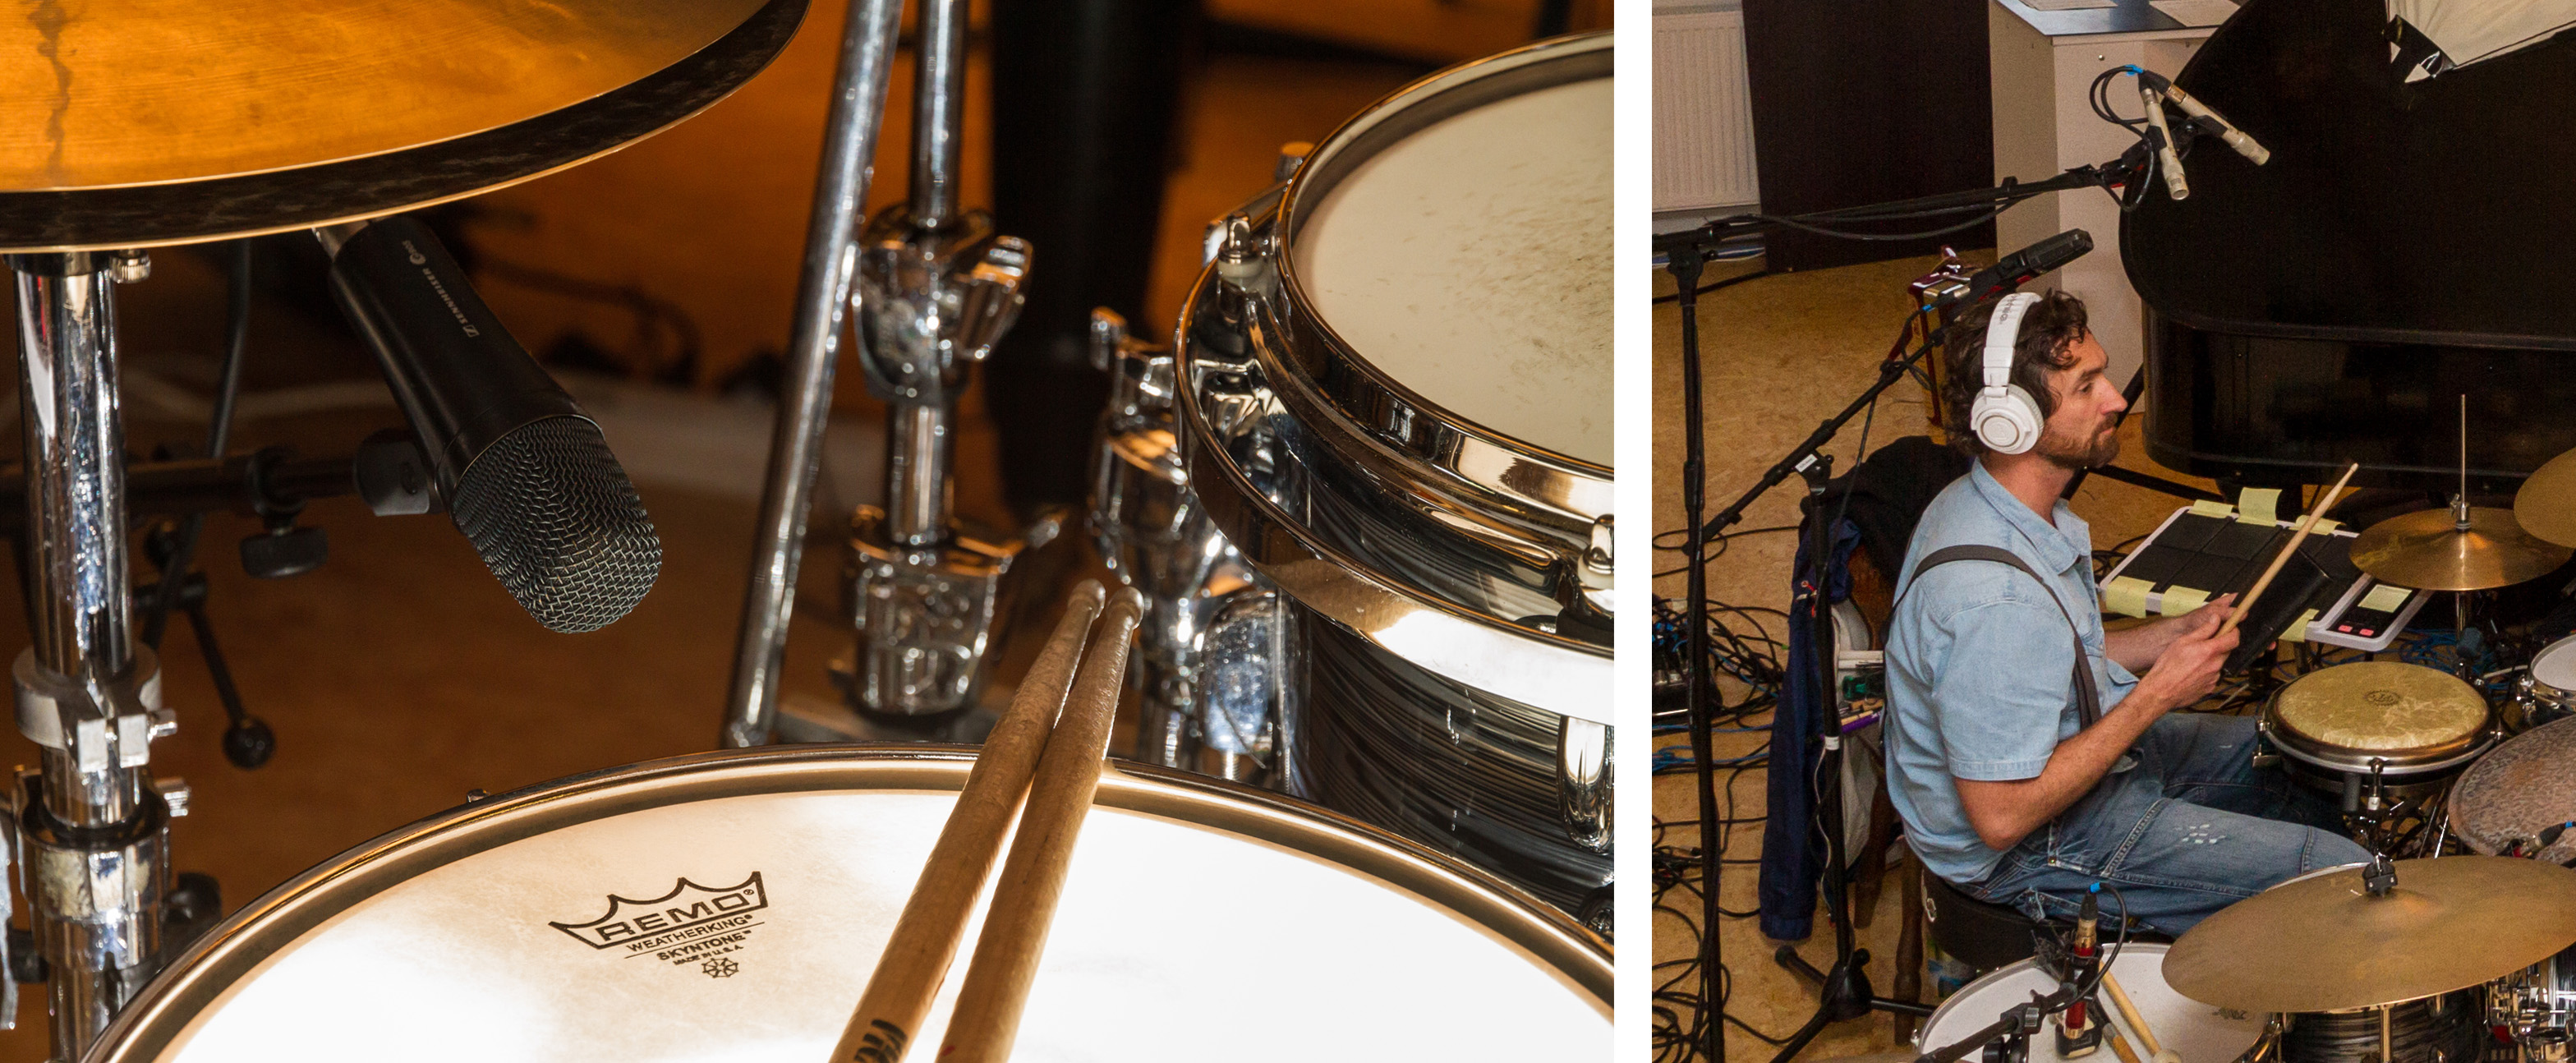 Microphone setup for snare drum (early experiment)